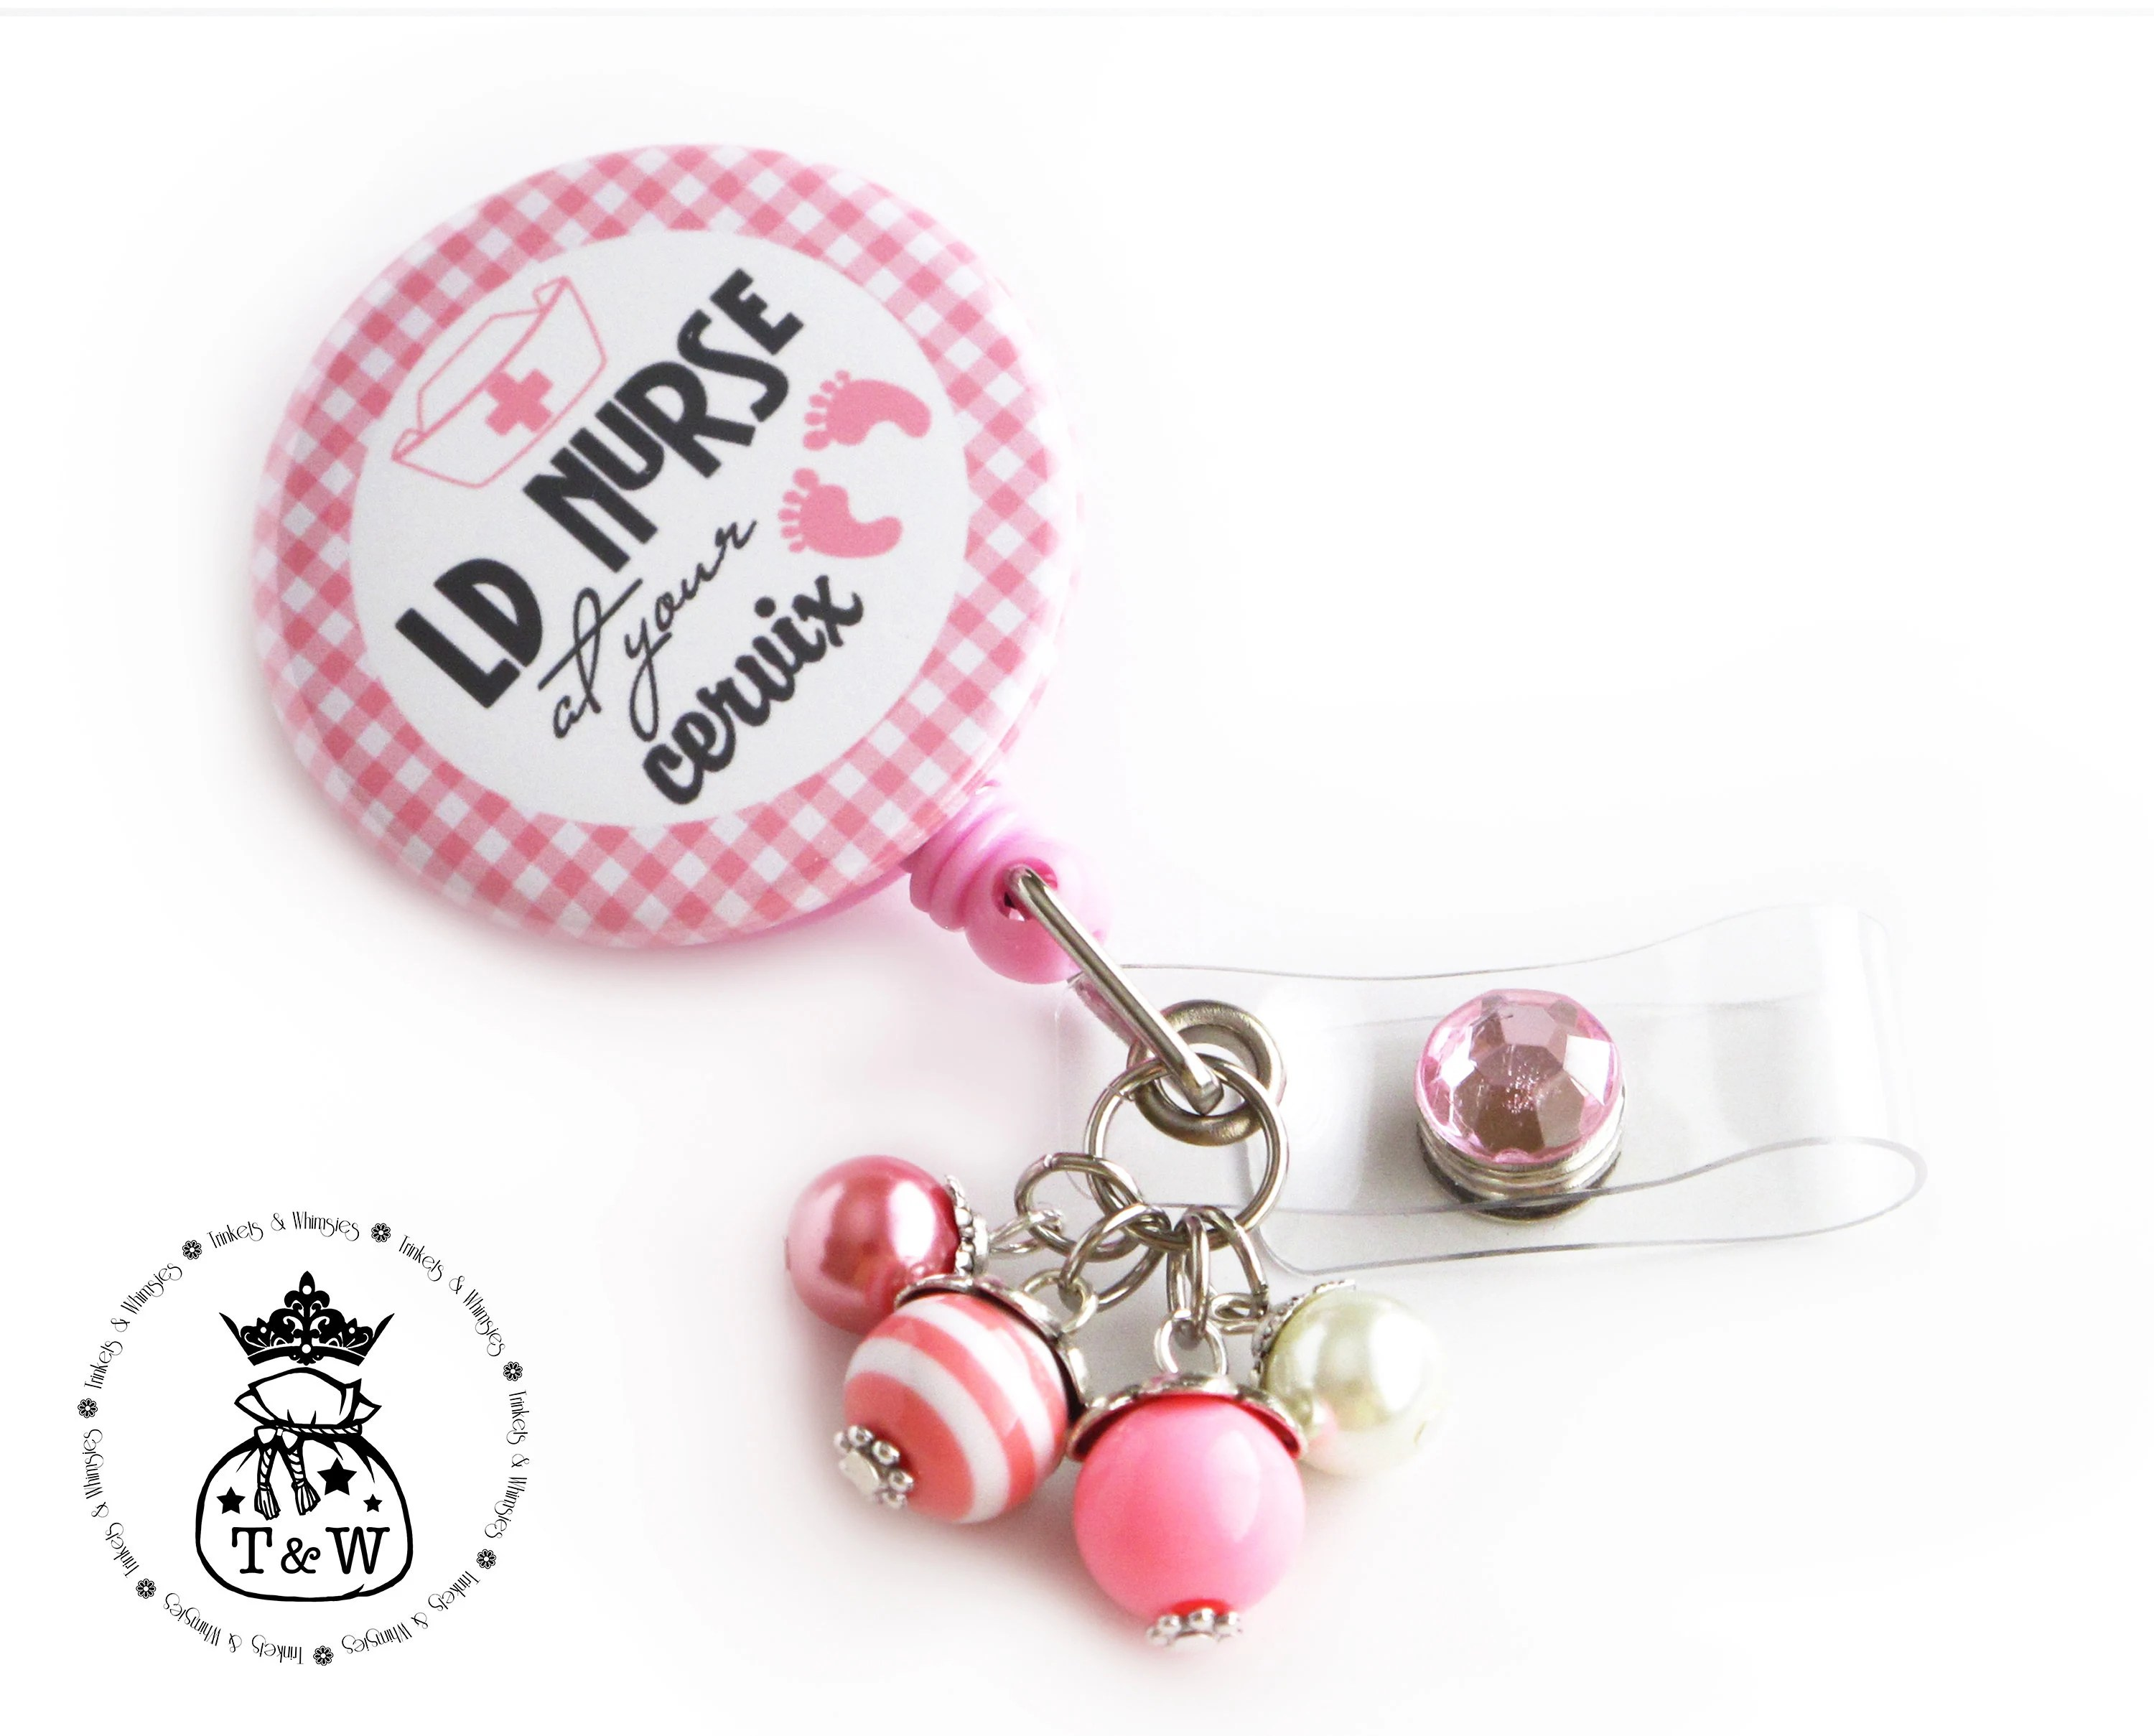 L and D Nurse LD Nurse Labor and Delivery Nurse At Your Etsy